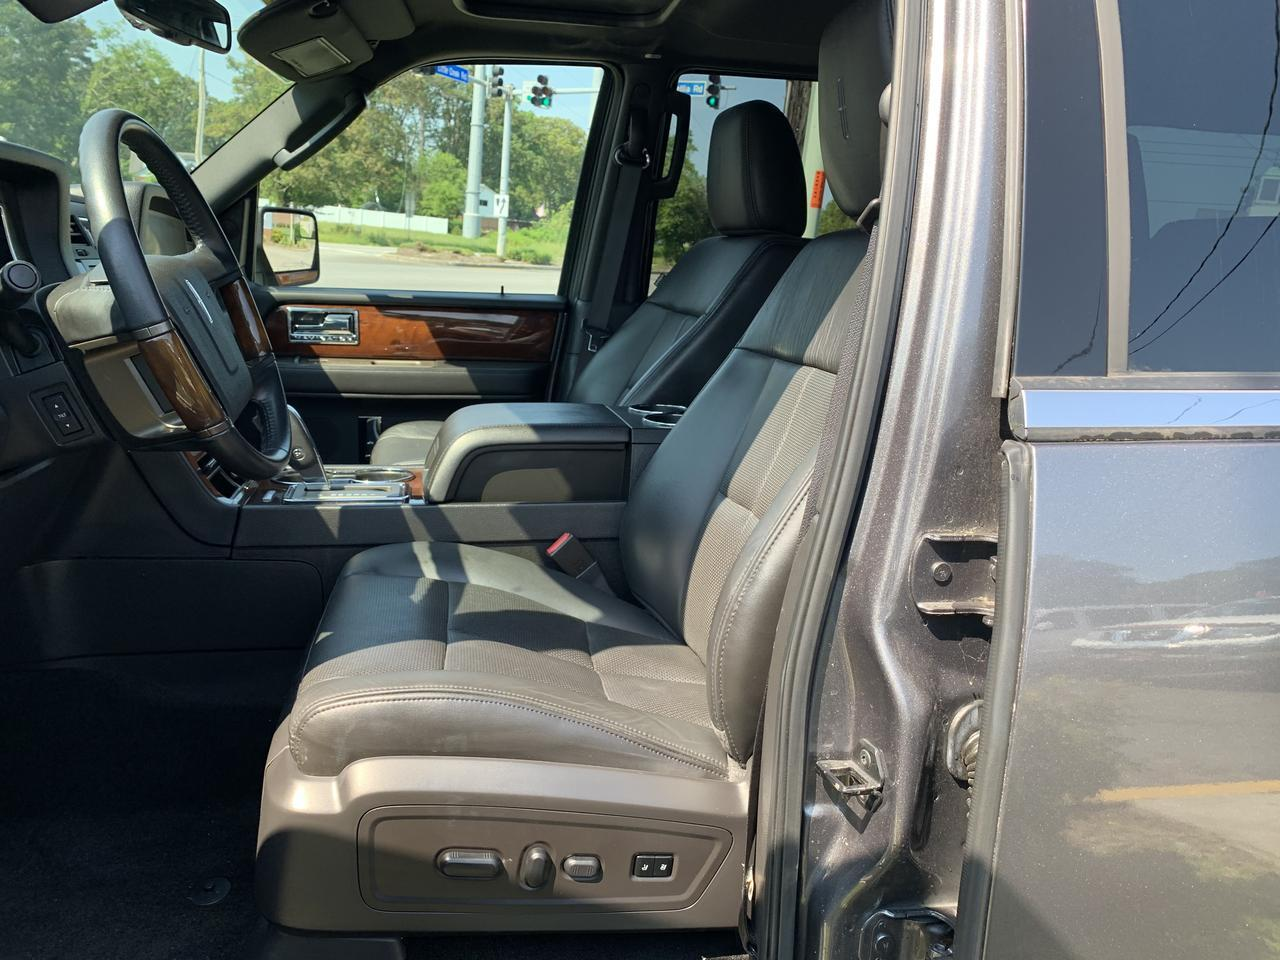 2013 LINCOLN NAVIGATOR 4X4, WARRANTY, LEATHER, NAV, SUNROOF, HEATED/COOLED SEATS, BACKUP CAM, POWER RUNNING BOARDS! Norfolk VA